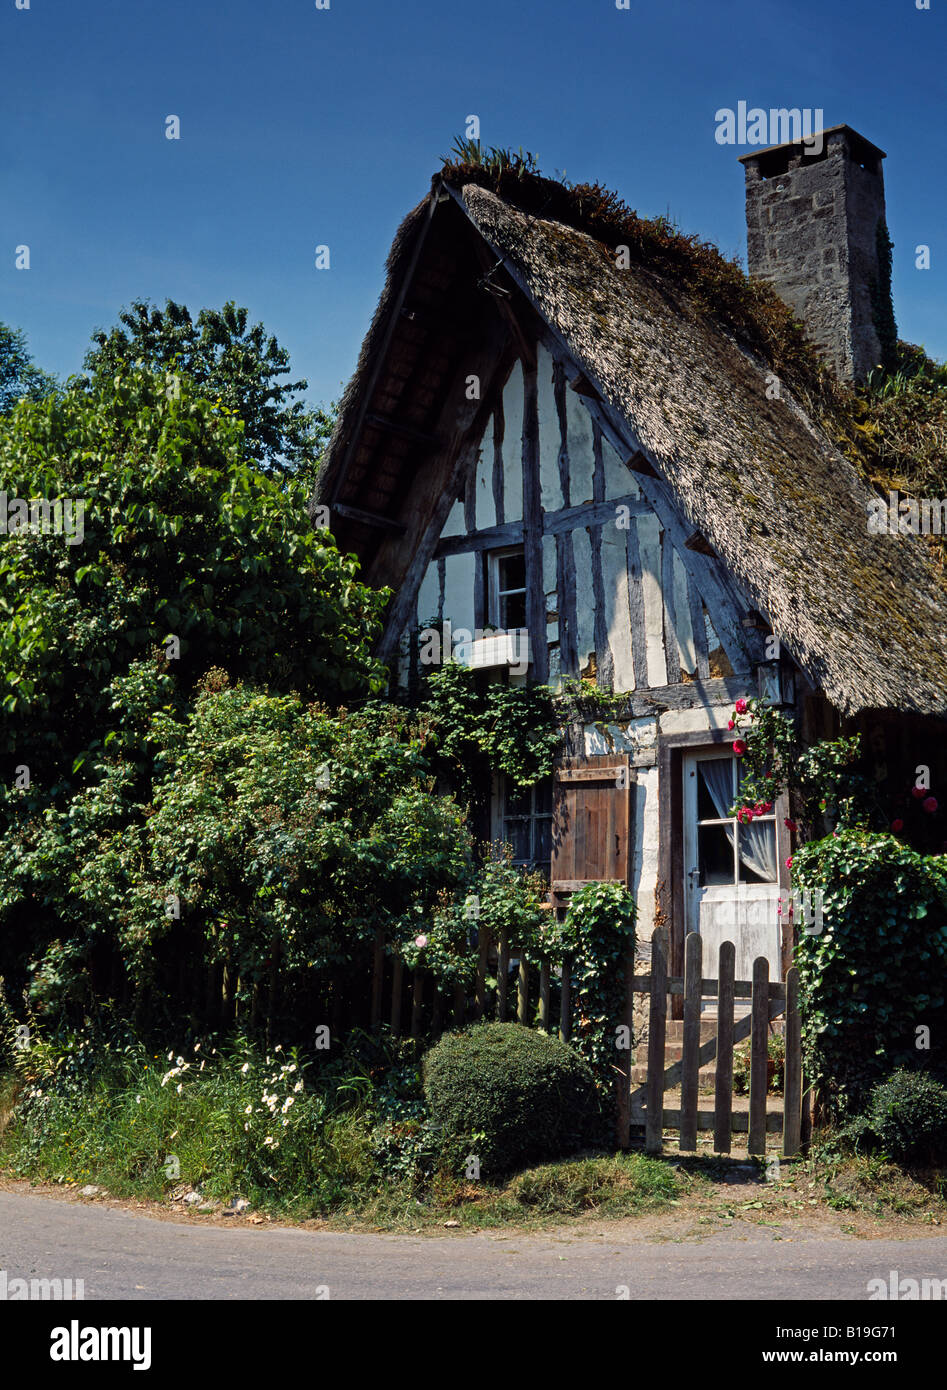 France, Normandy, Barneville la Bertran. A 'Norman' Cottage - typical 'Norman' architecture found - Stock Image